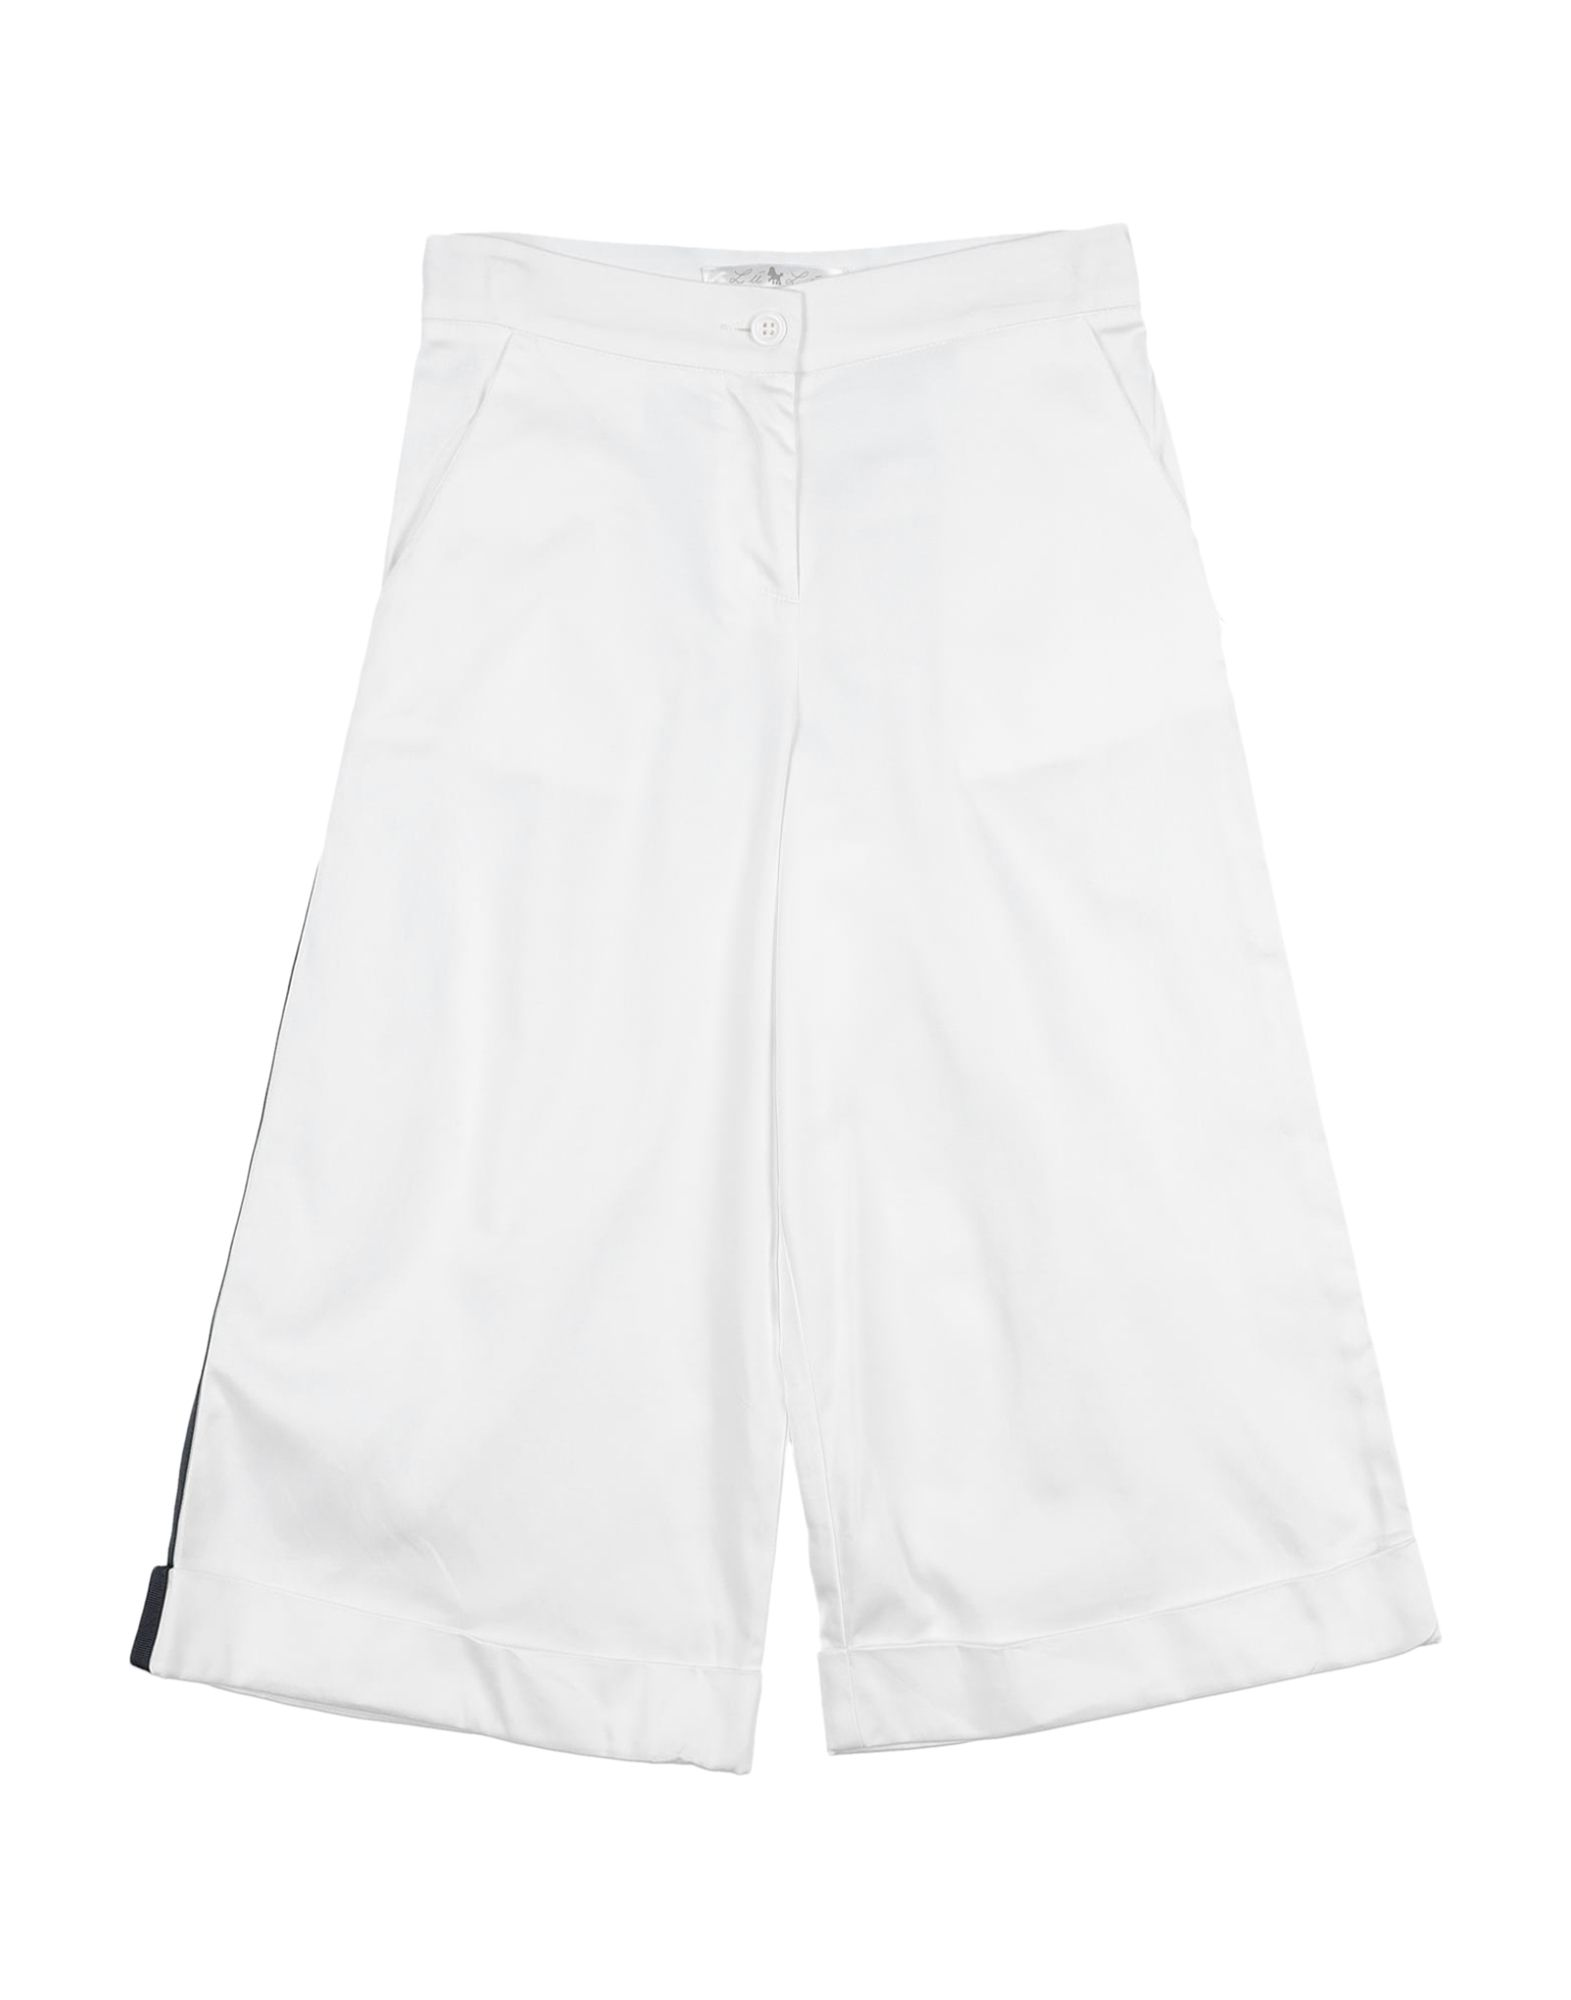 L:ú L:ú By Miss Grant Kids' Casual Pants In White